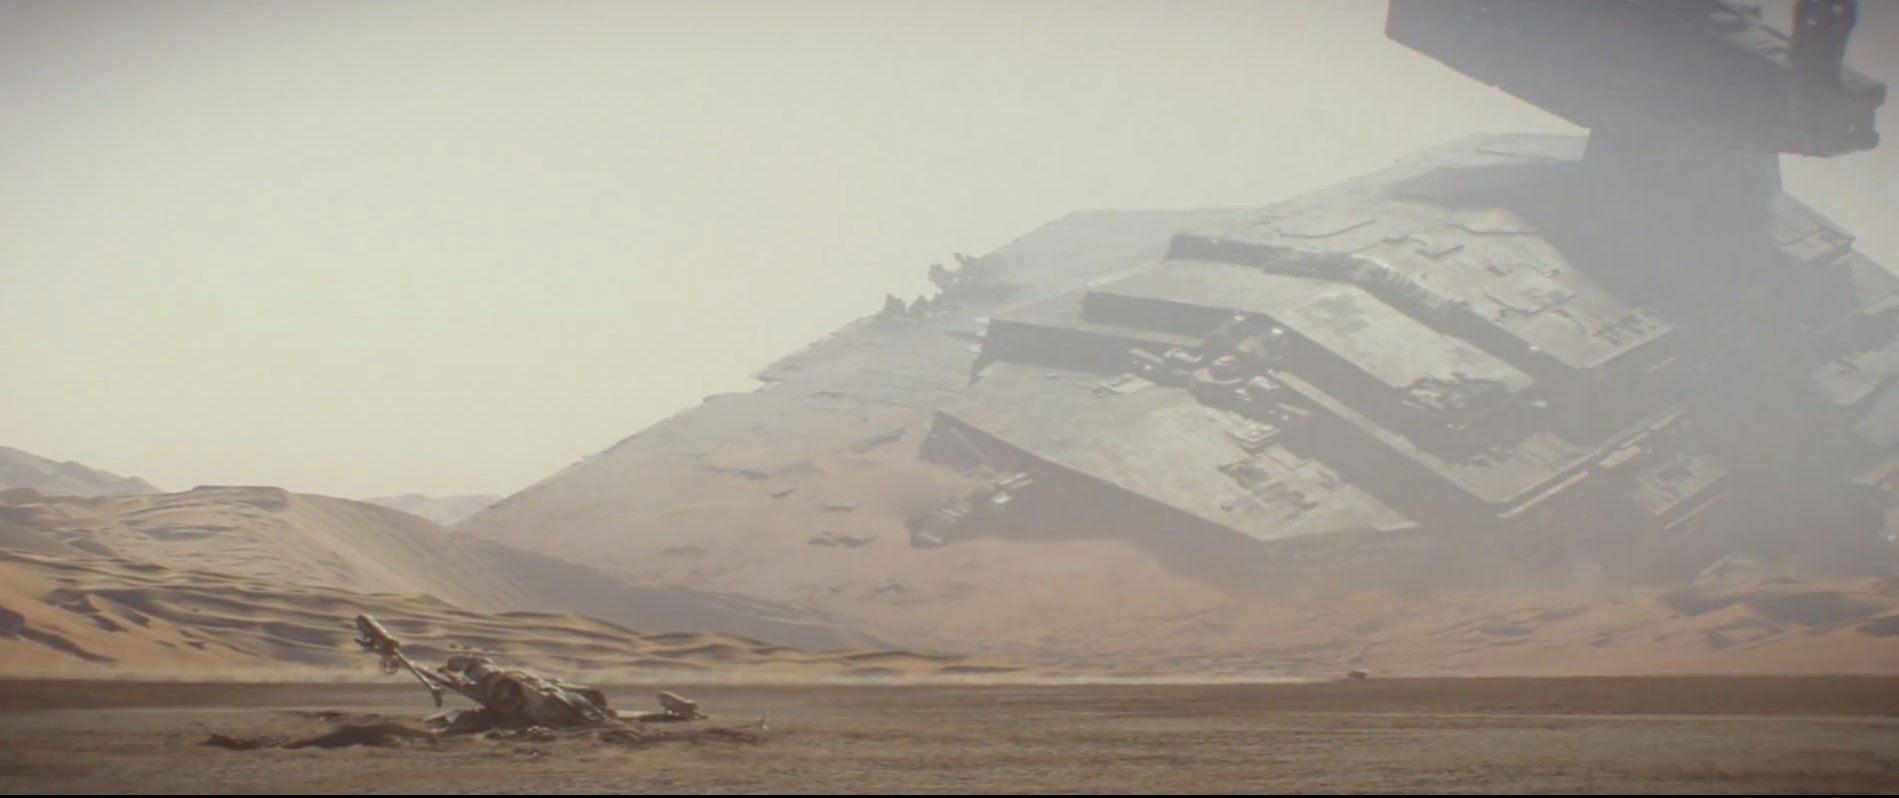 The Force Awakens: Jakku Battle Remnants